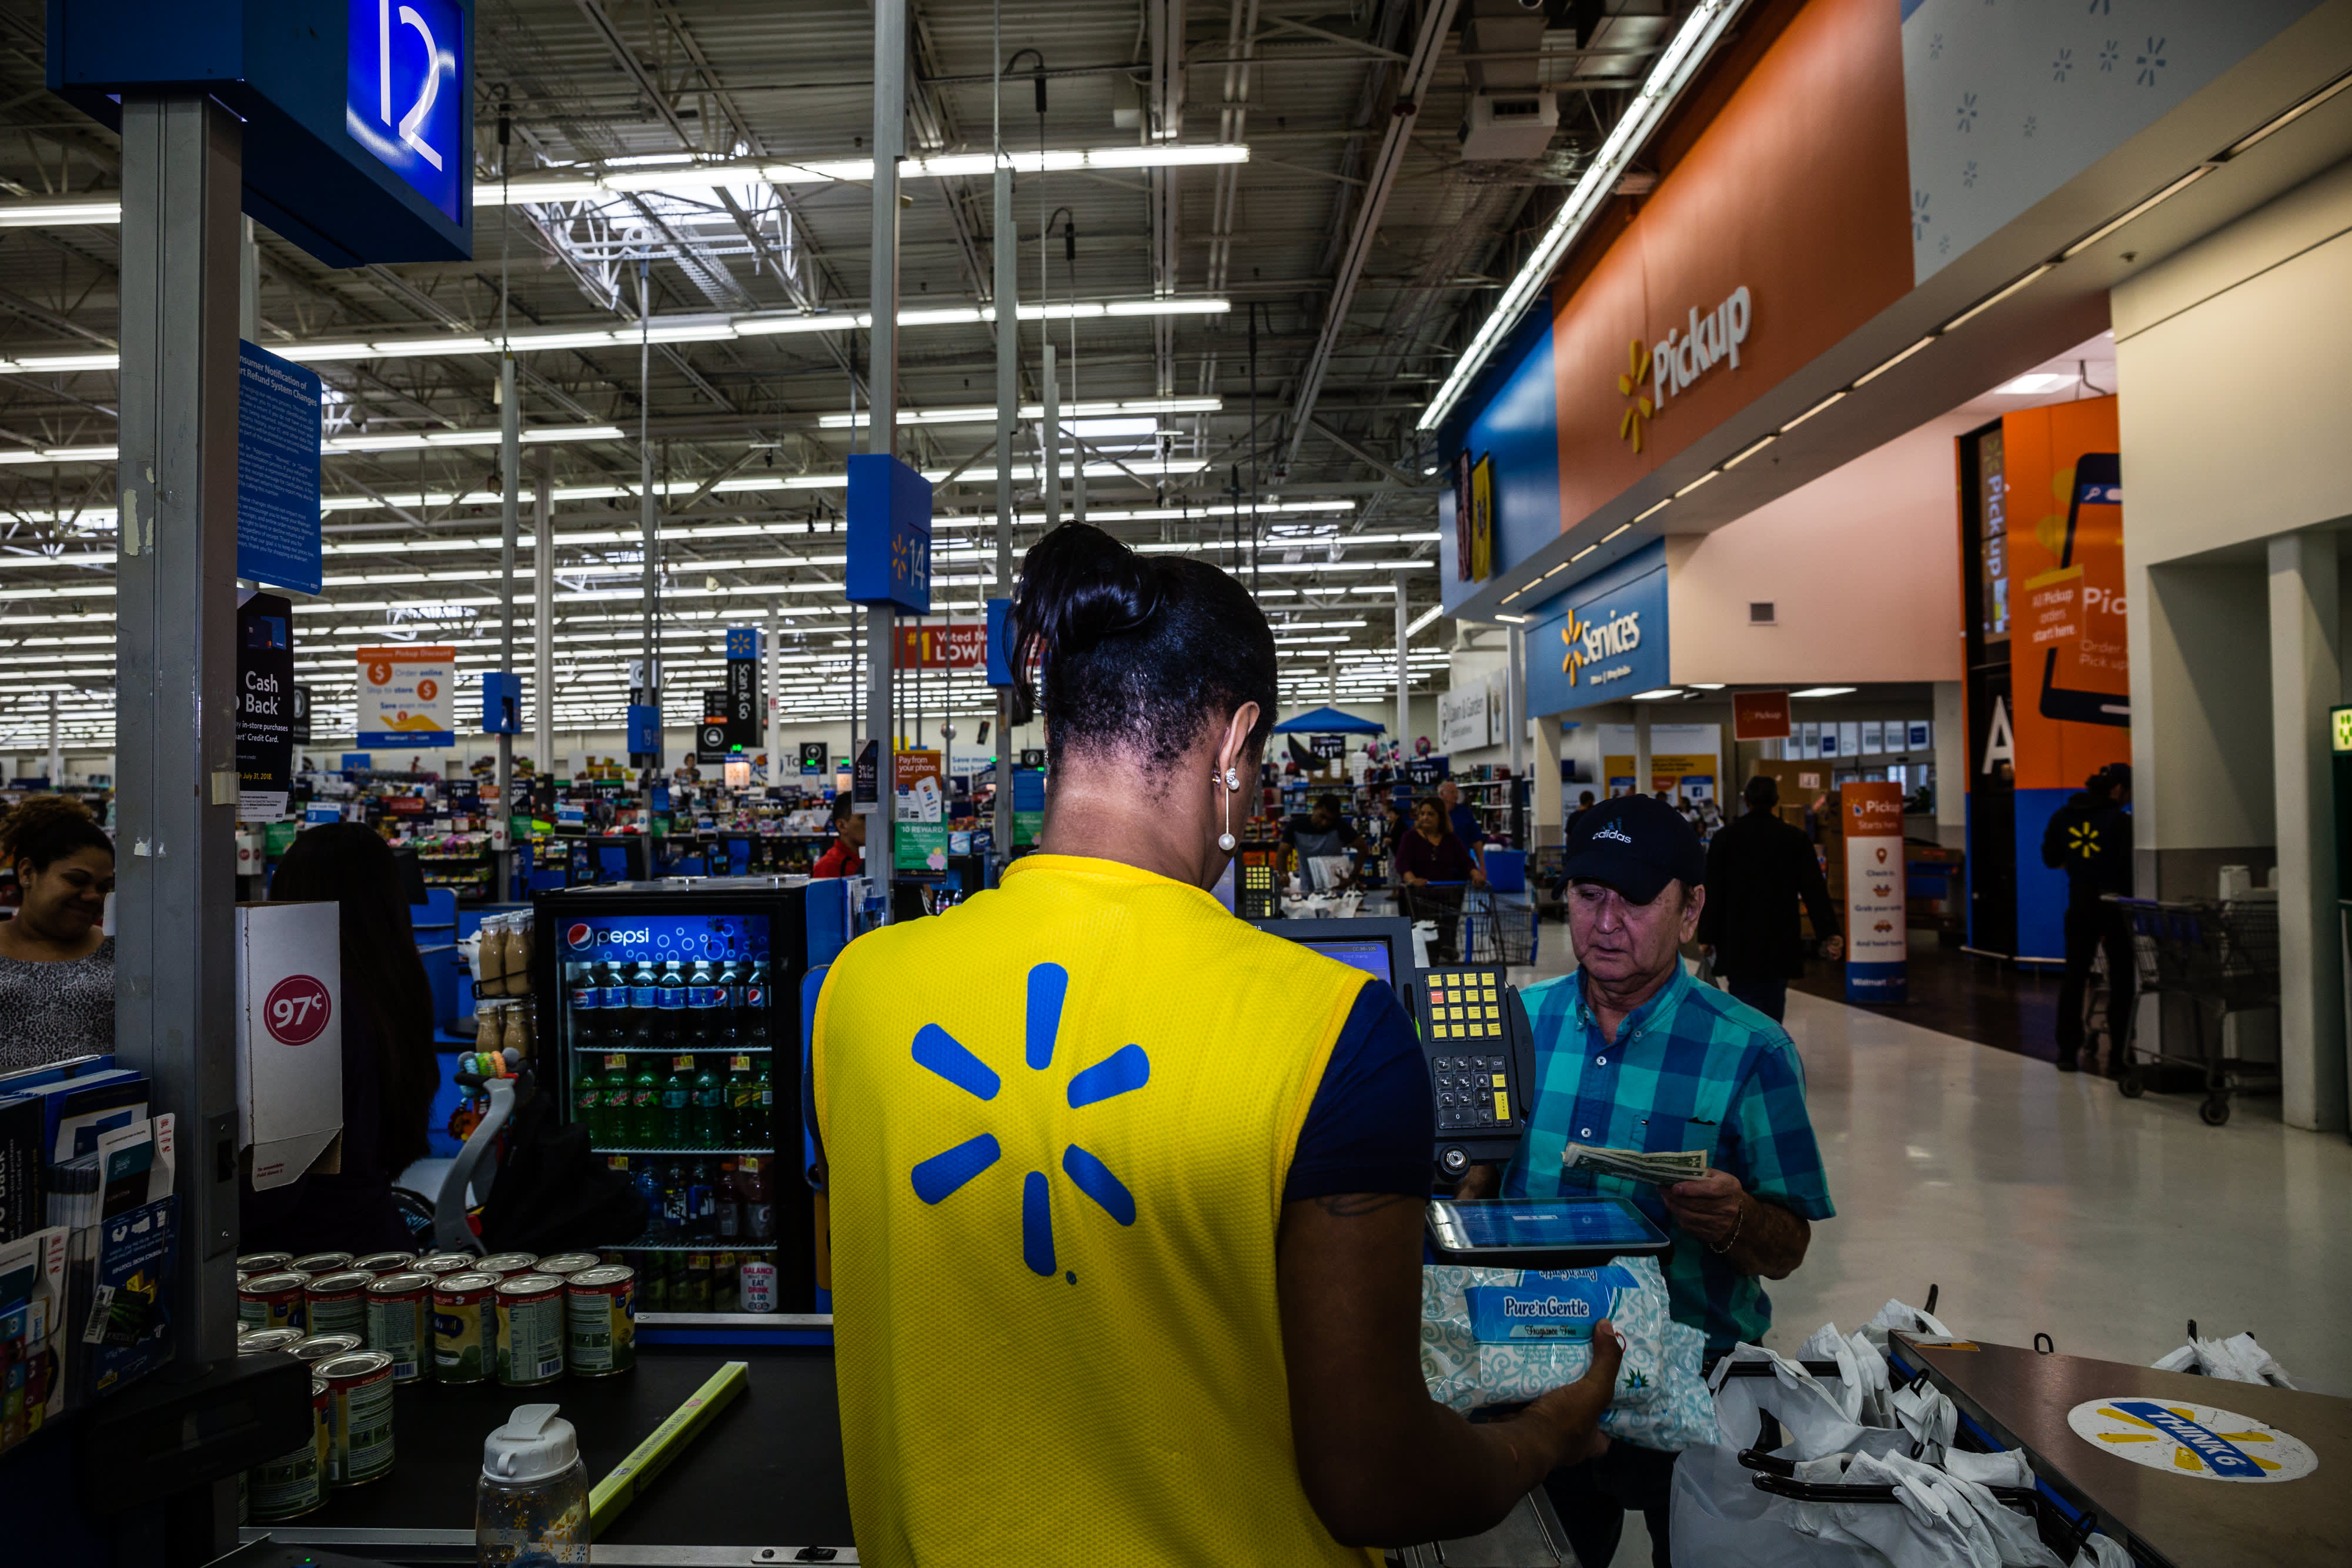 Workers With Disabilities Feel Targeted After Walmart Changes Job Requirements Report Says